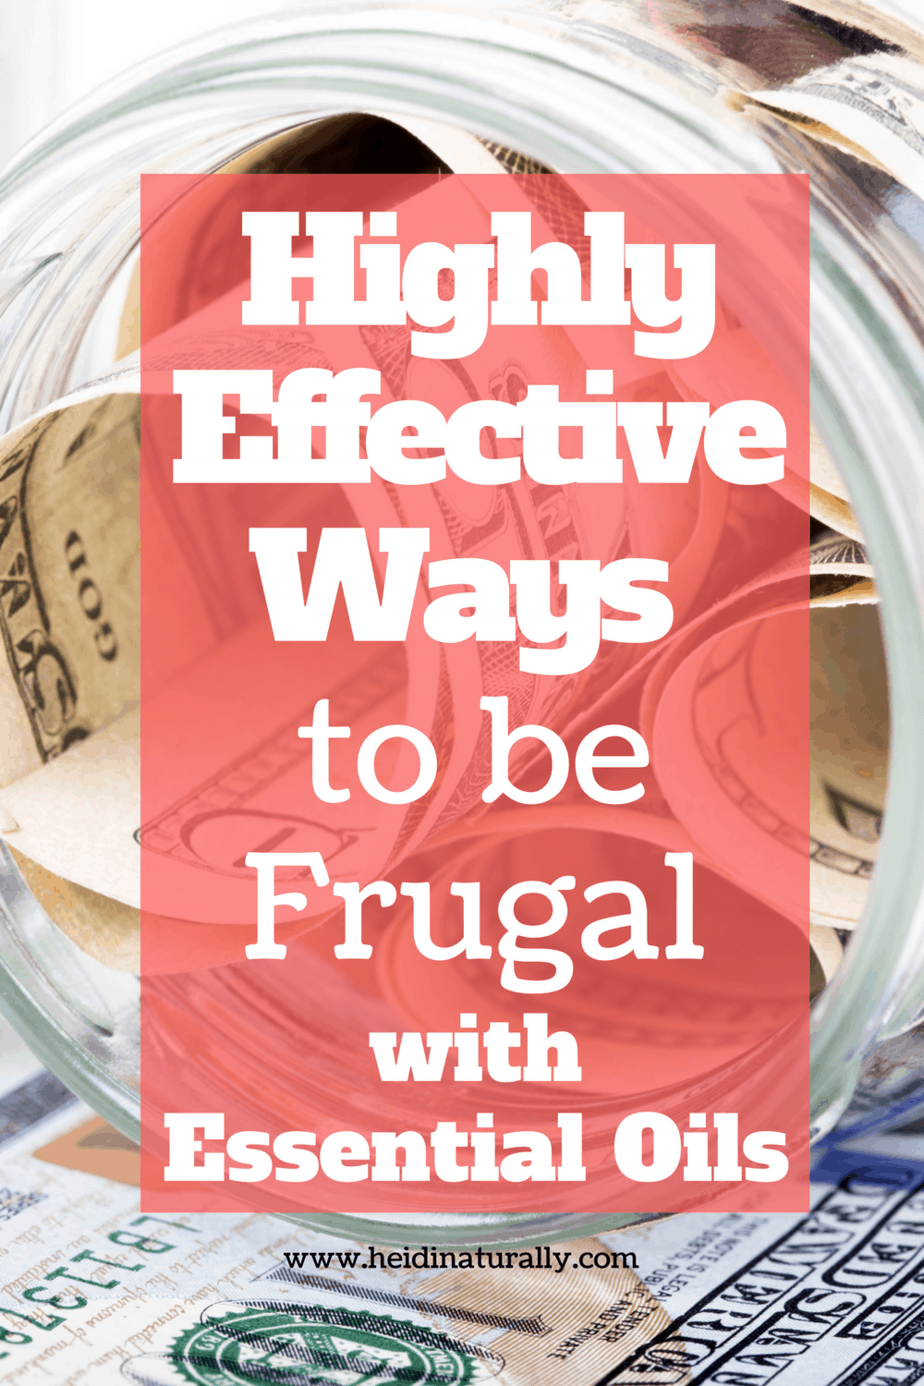 Find out which essential oils will help live a frugal lifestyle. Learn how to save money using oils effectively from a money saving mom.